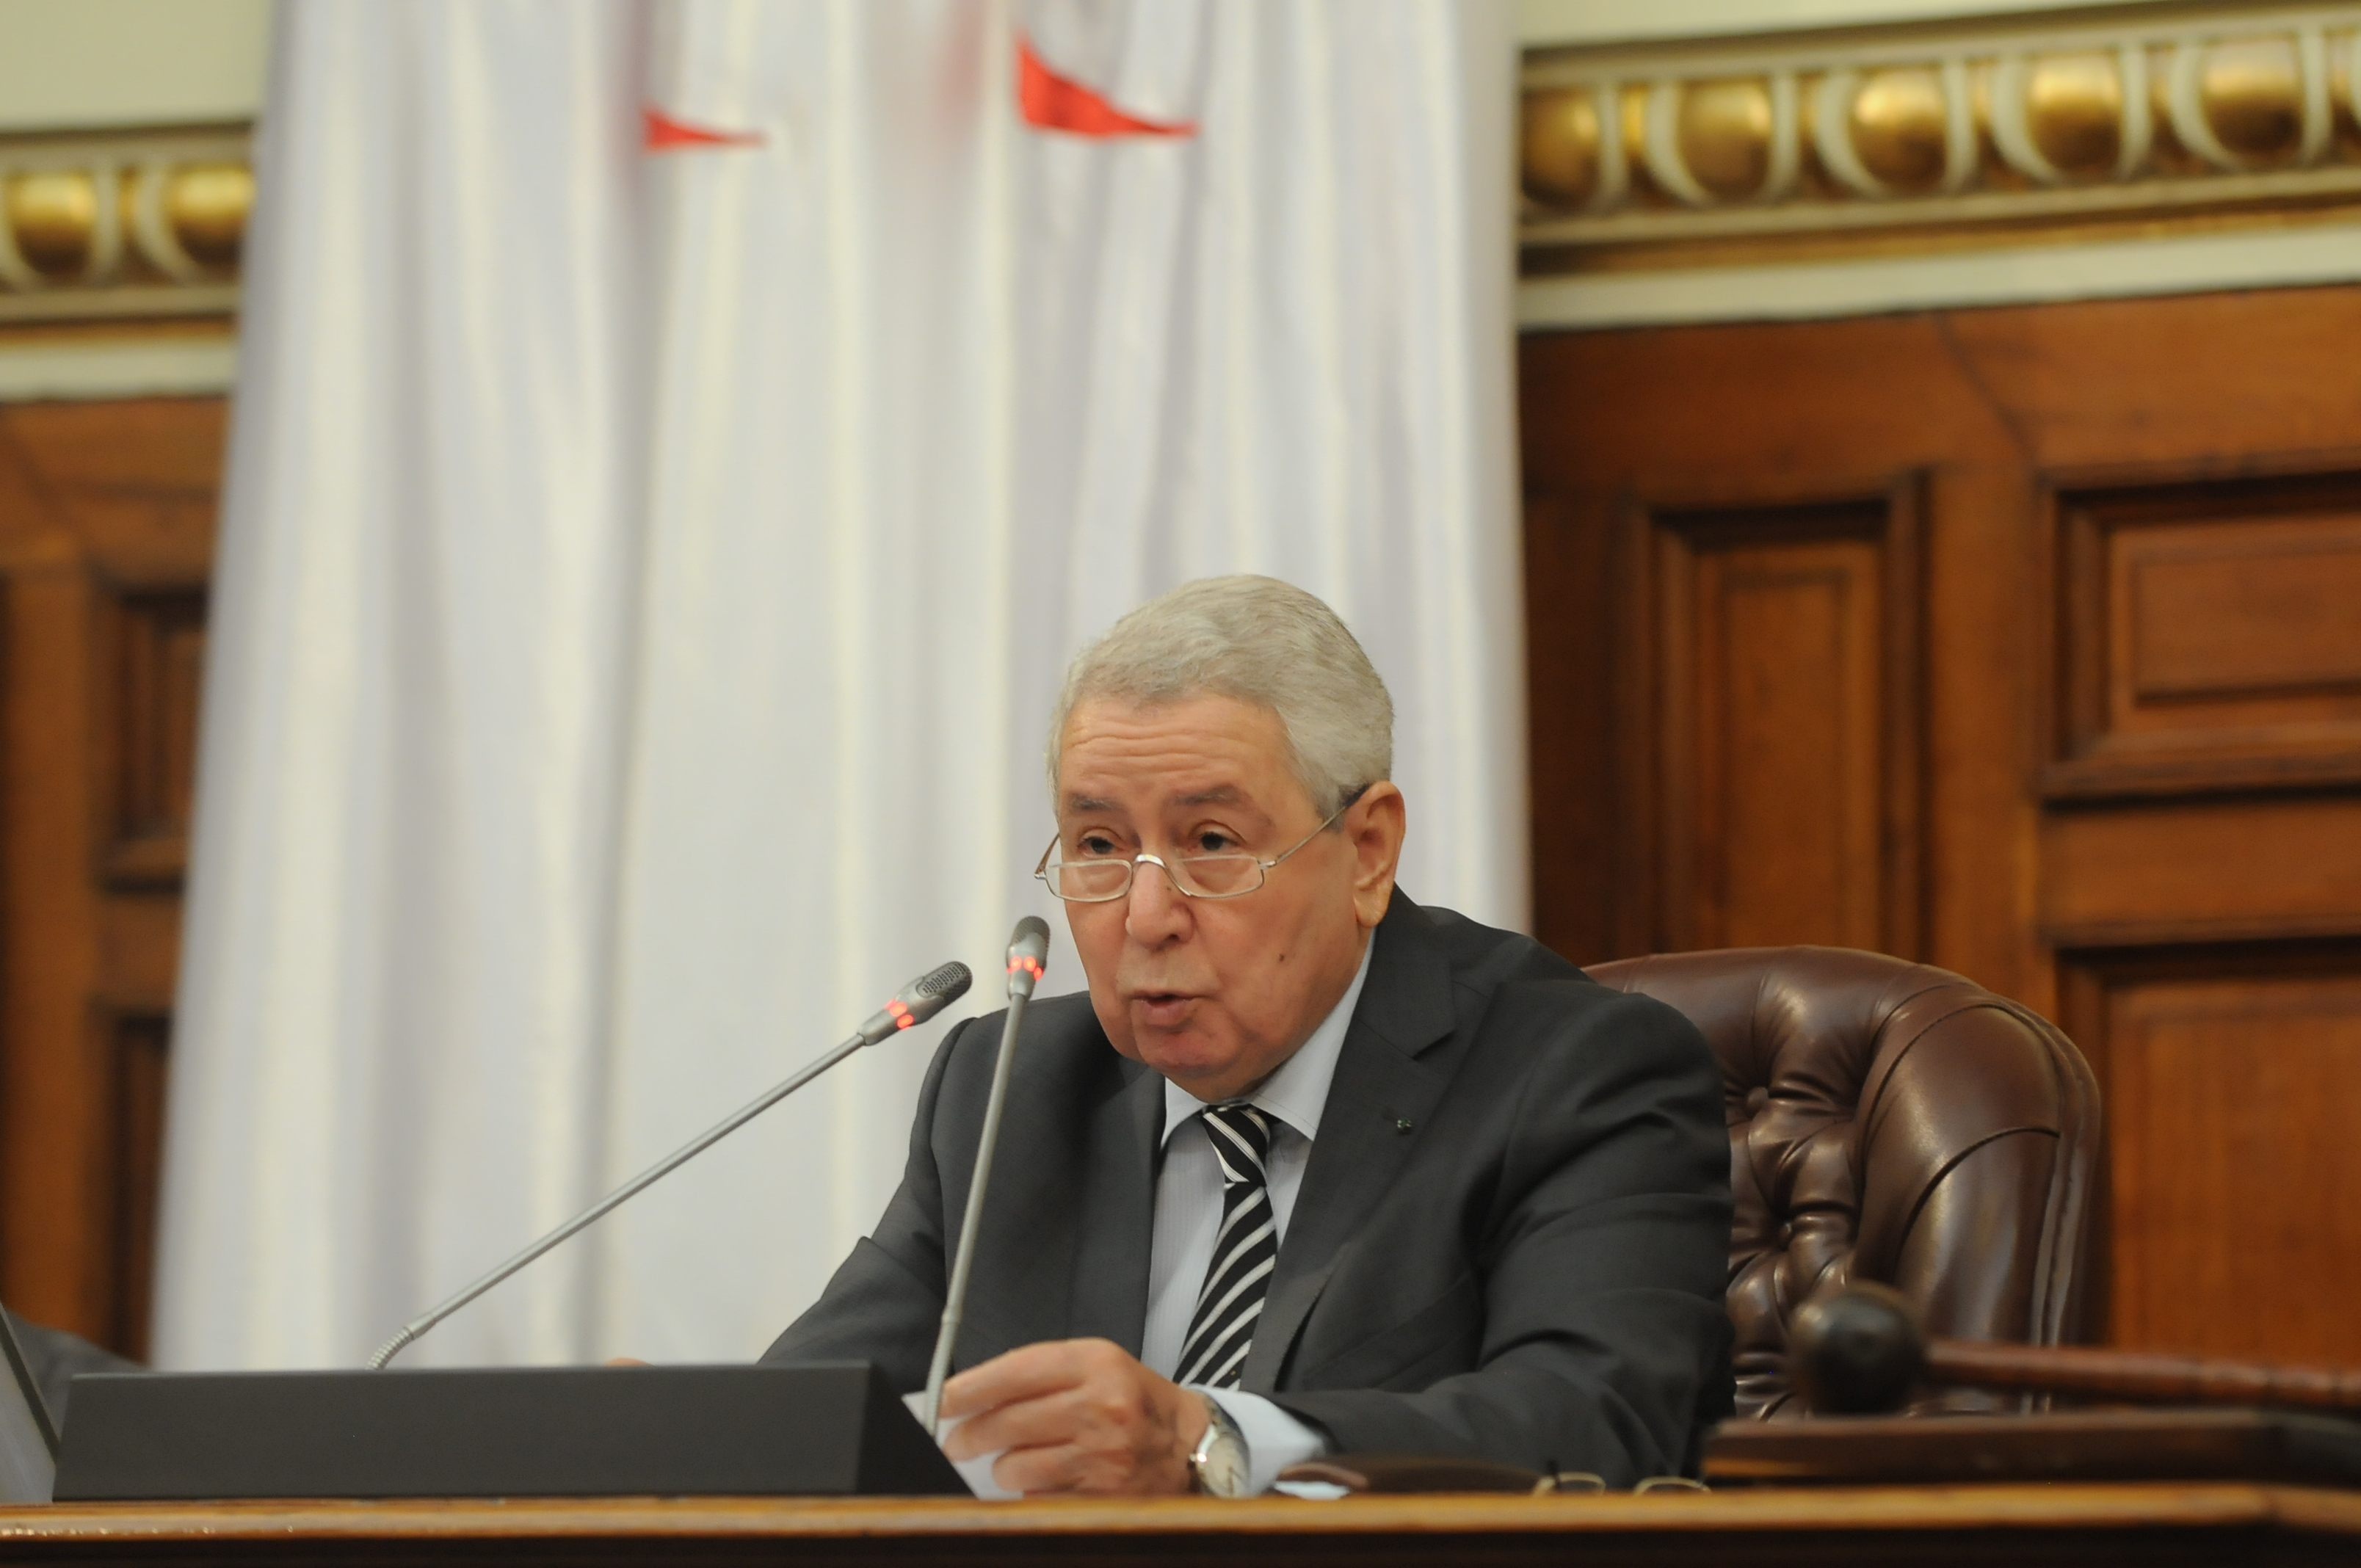 Abdelkader Bensalah, président du Conseil de la nation. New Press